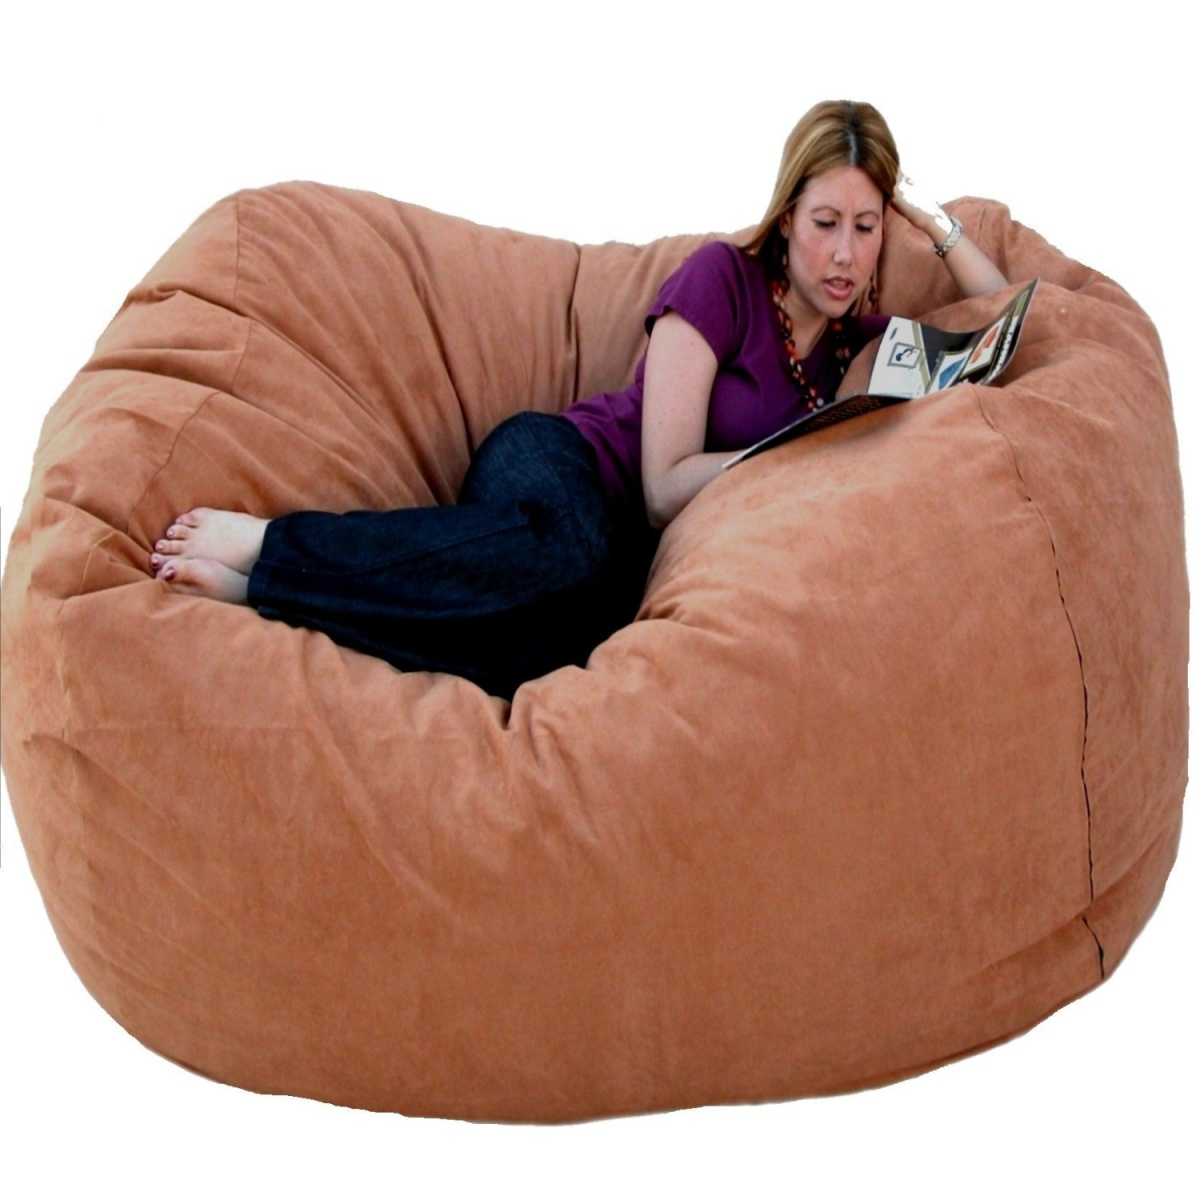 Astonishing Best Bean Bag Chairs For Adults Ideas With Images Alphanode Cool Chair Designs And Ideas Alphanodeonline